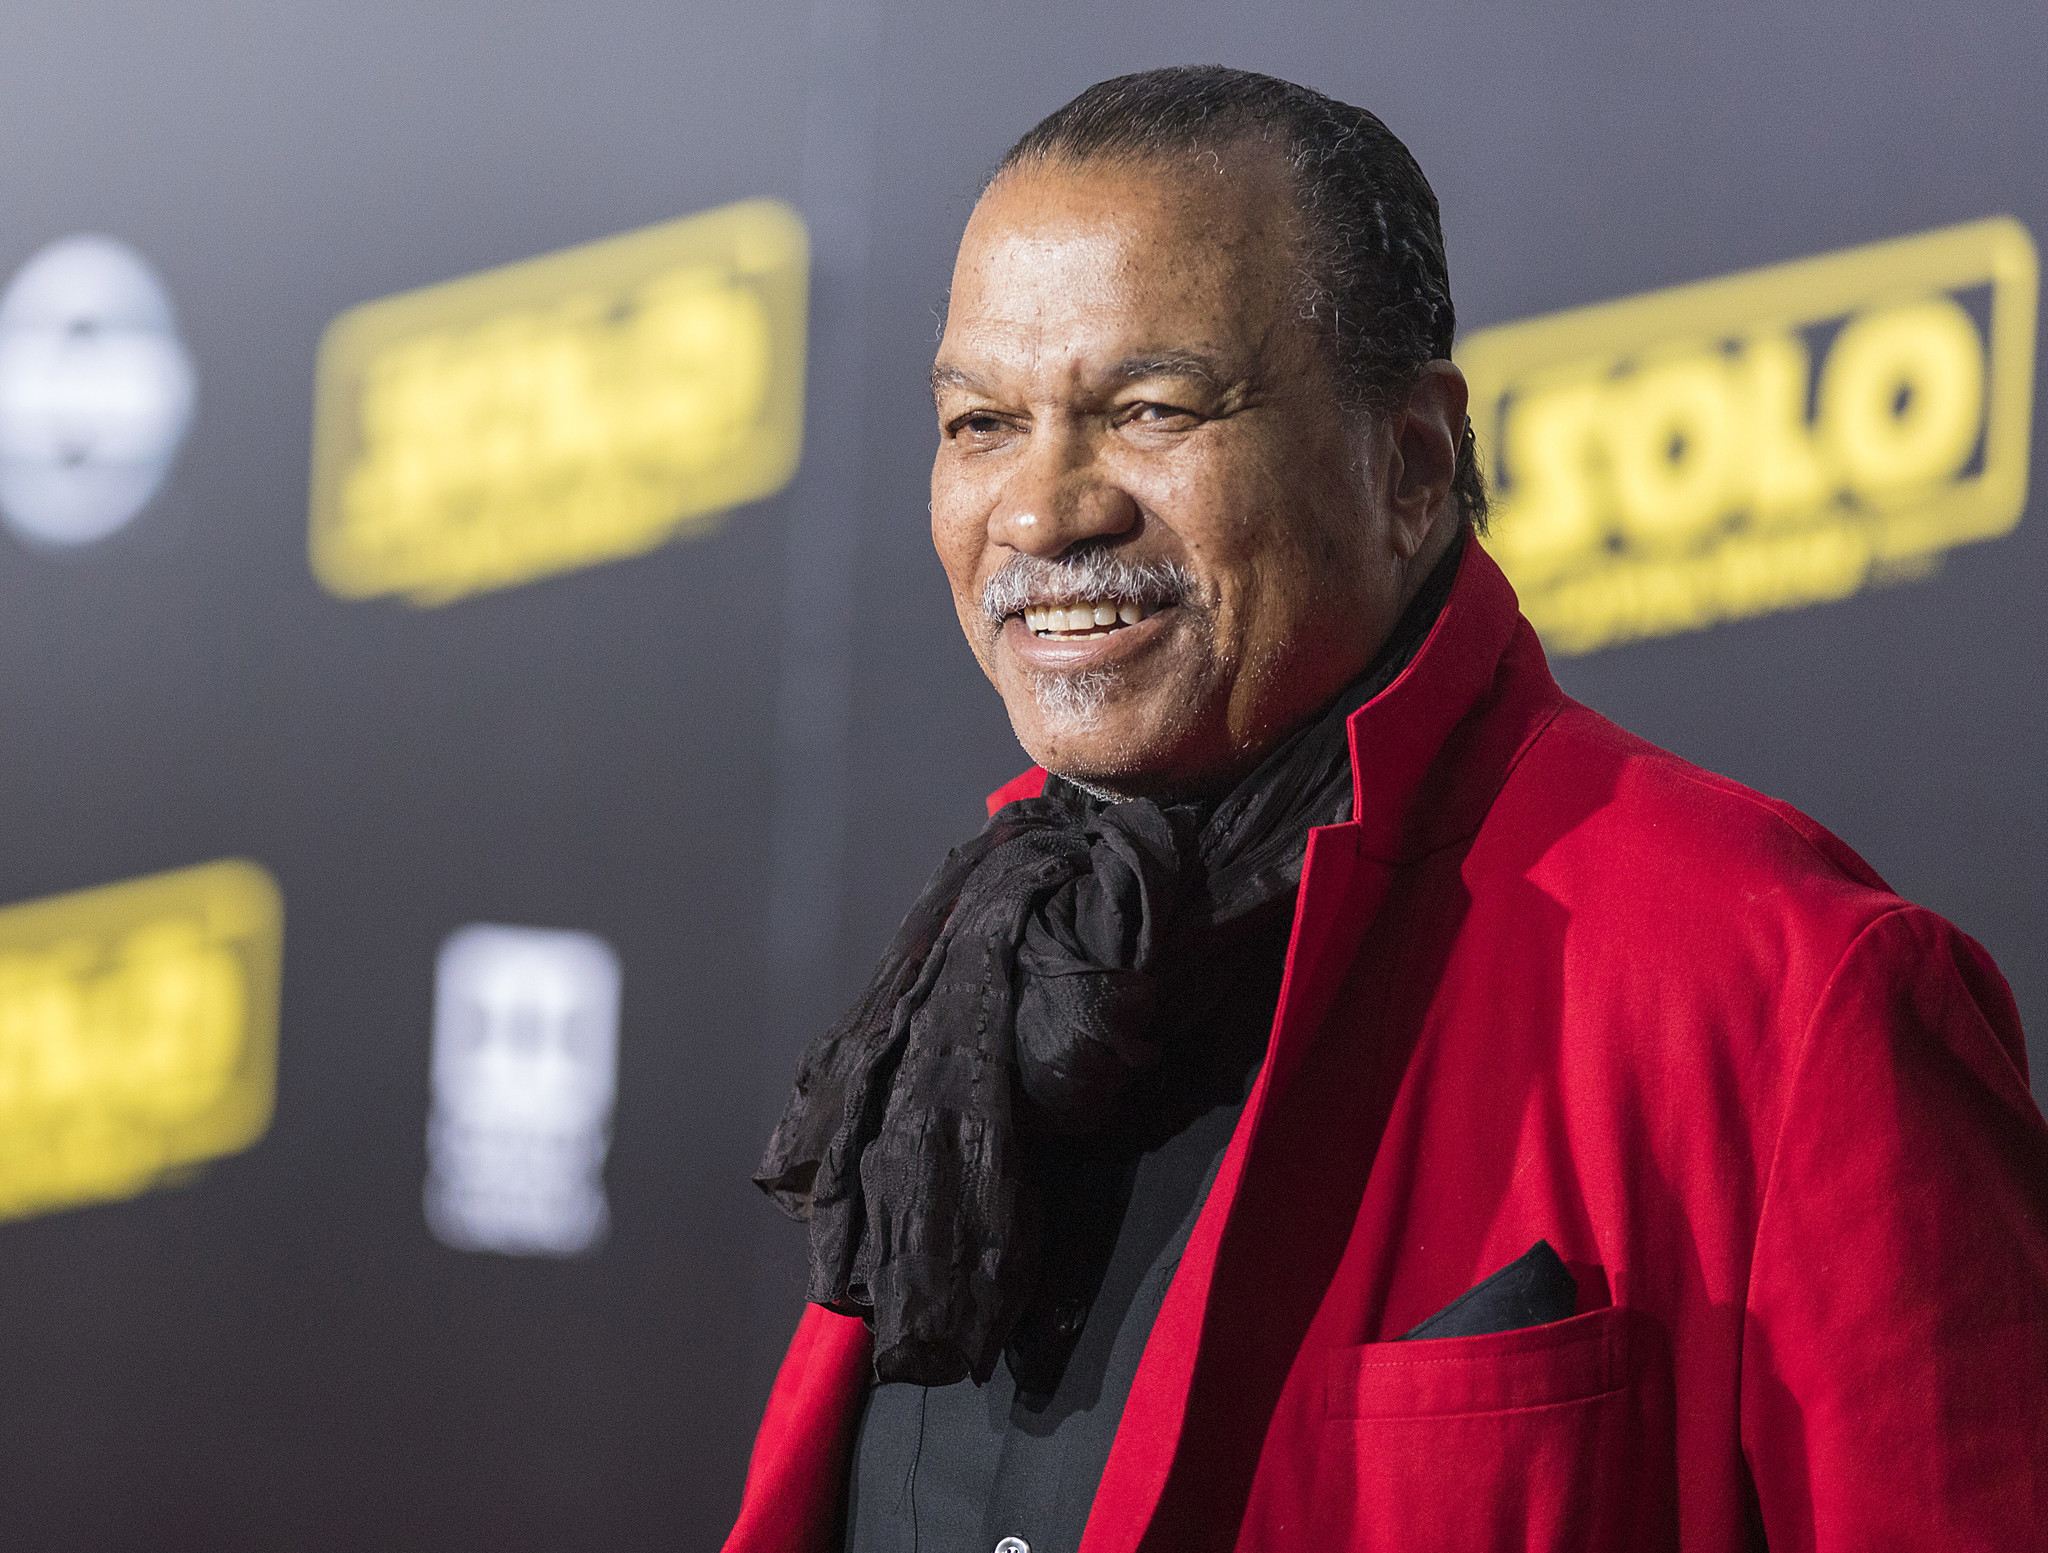 'Star Wars' star Billy Dee Williams says he identifies as masculine and feminine